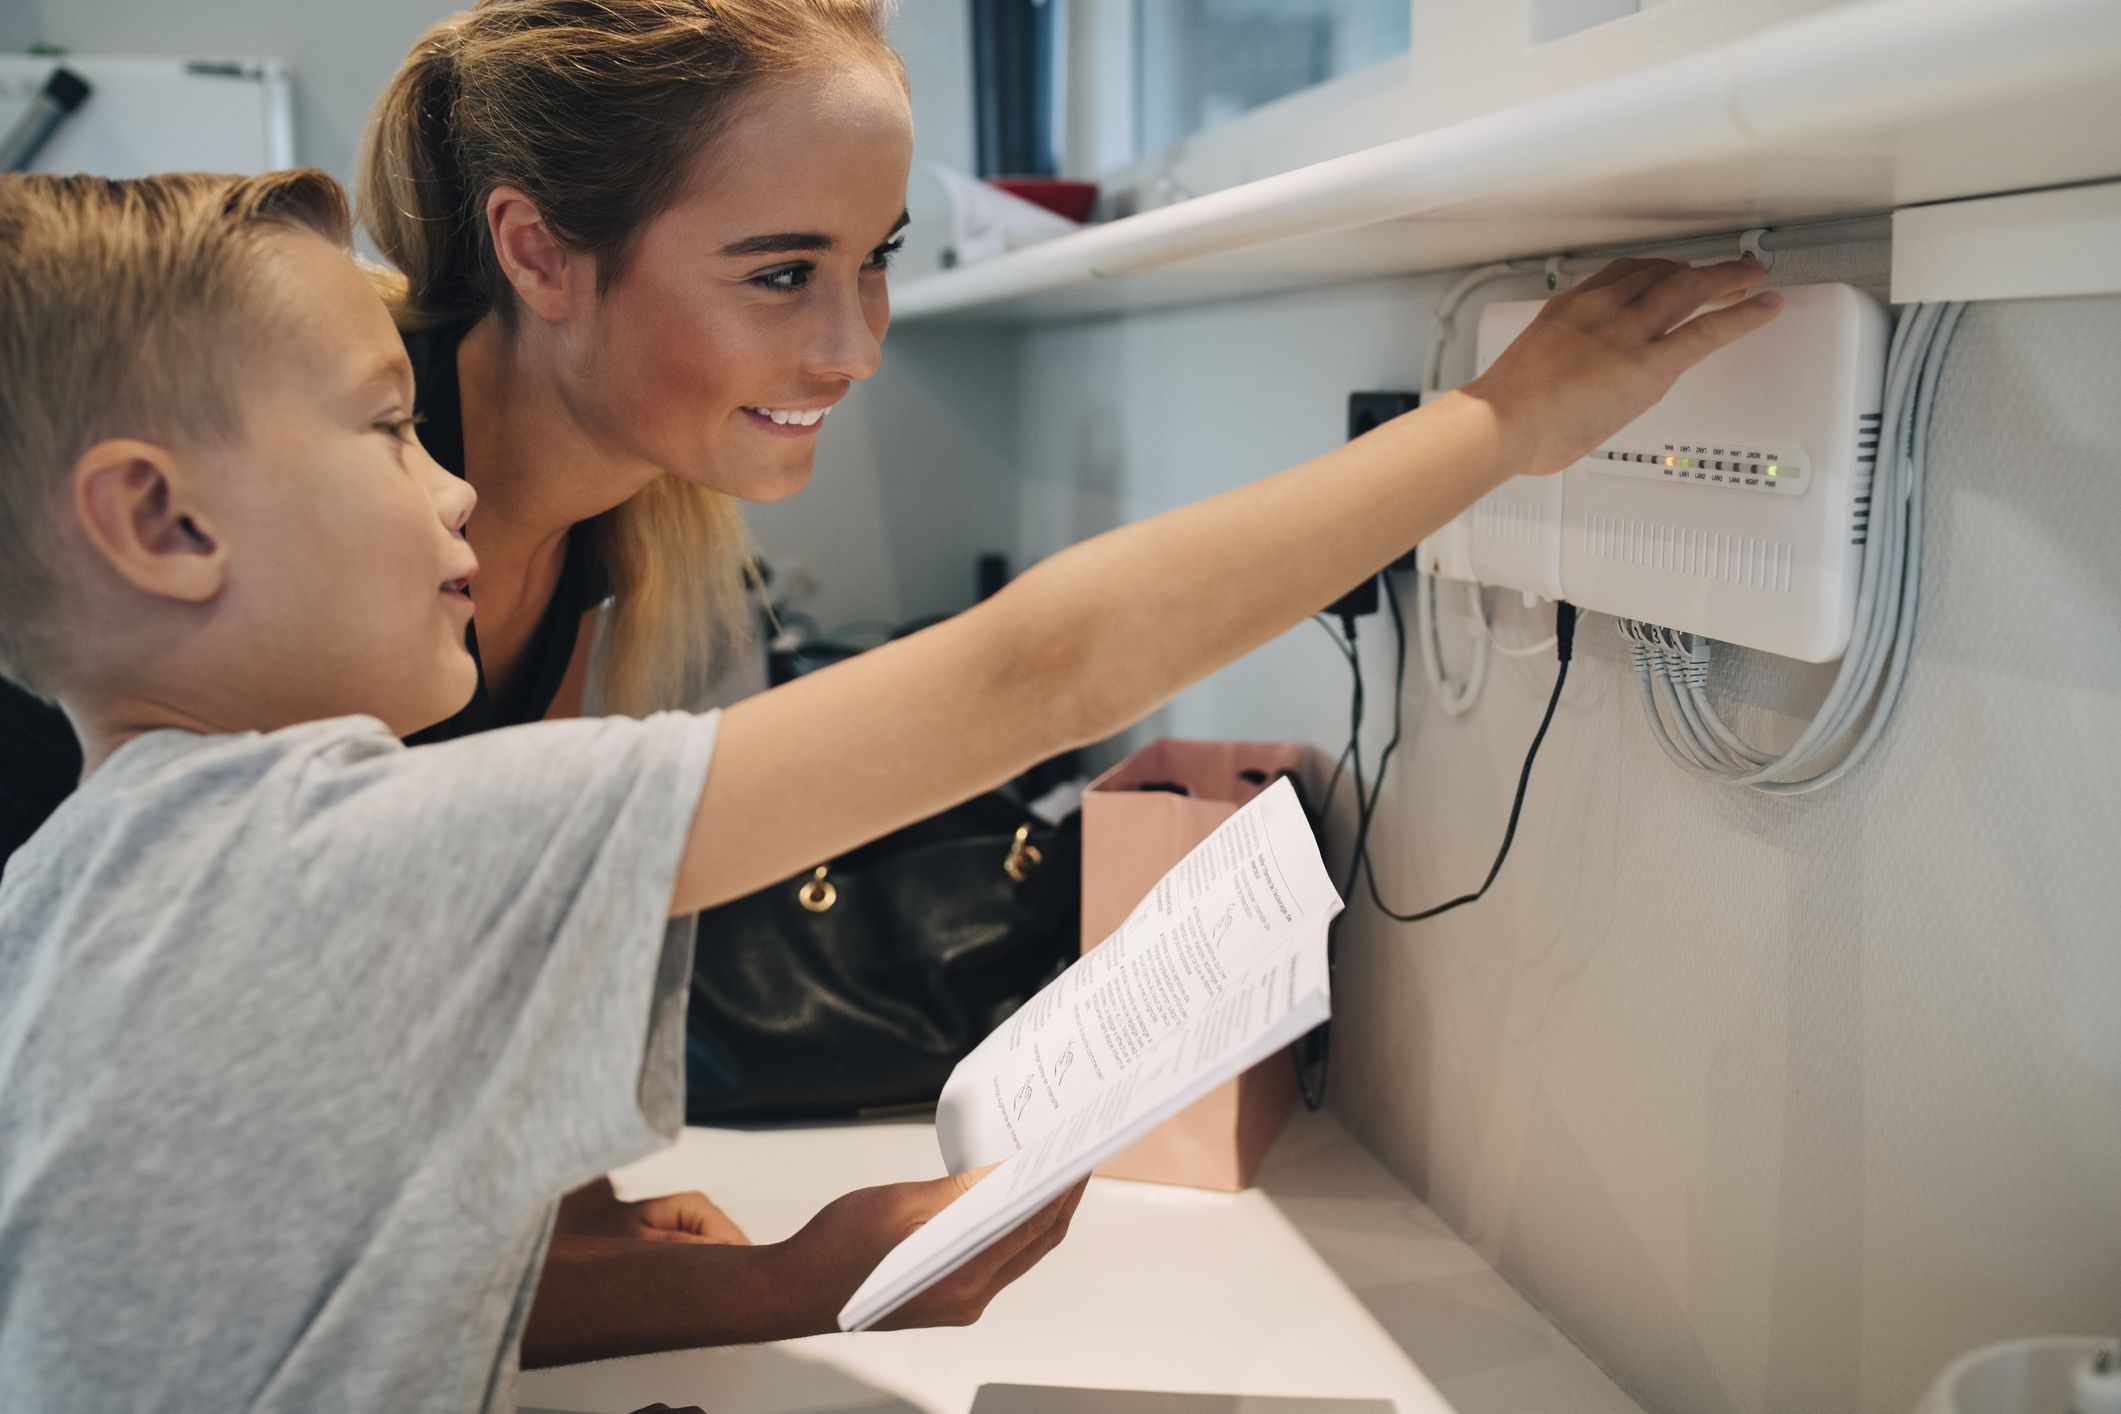 Child and adult installing a Wi-Fi router